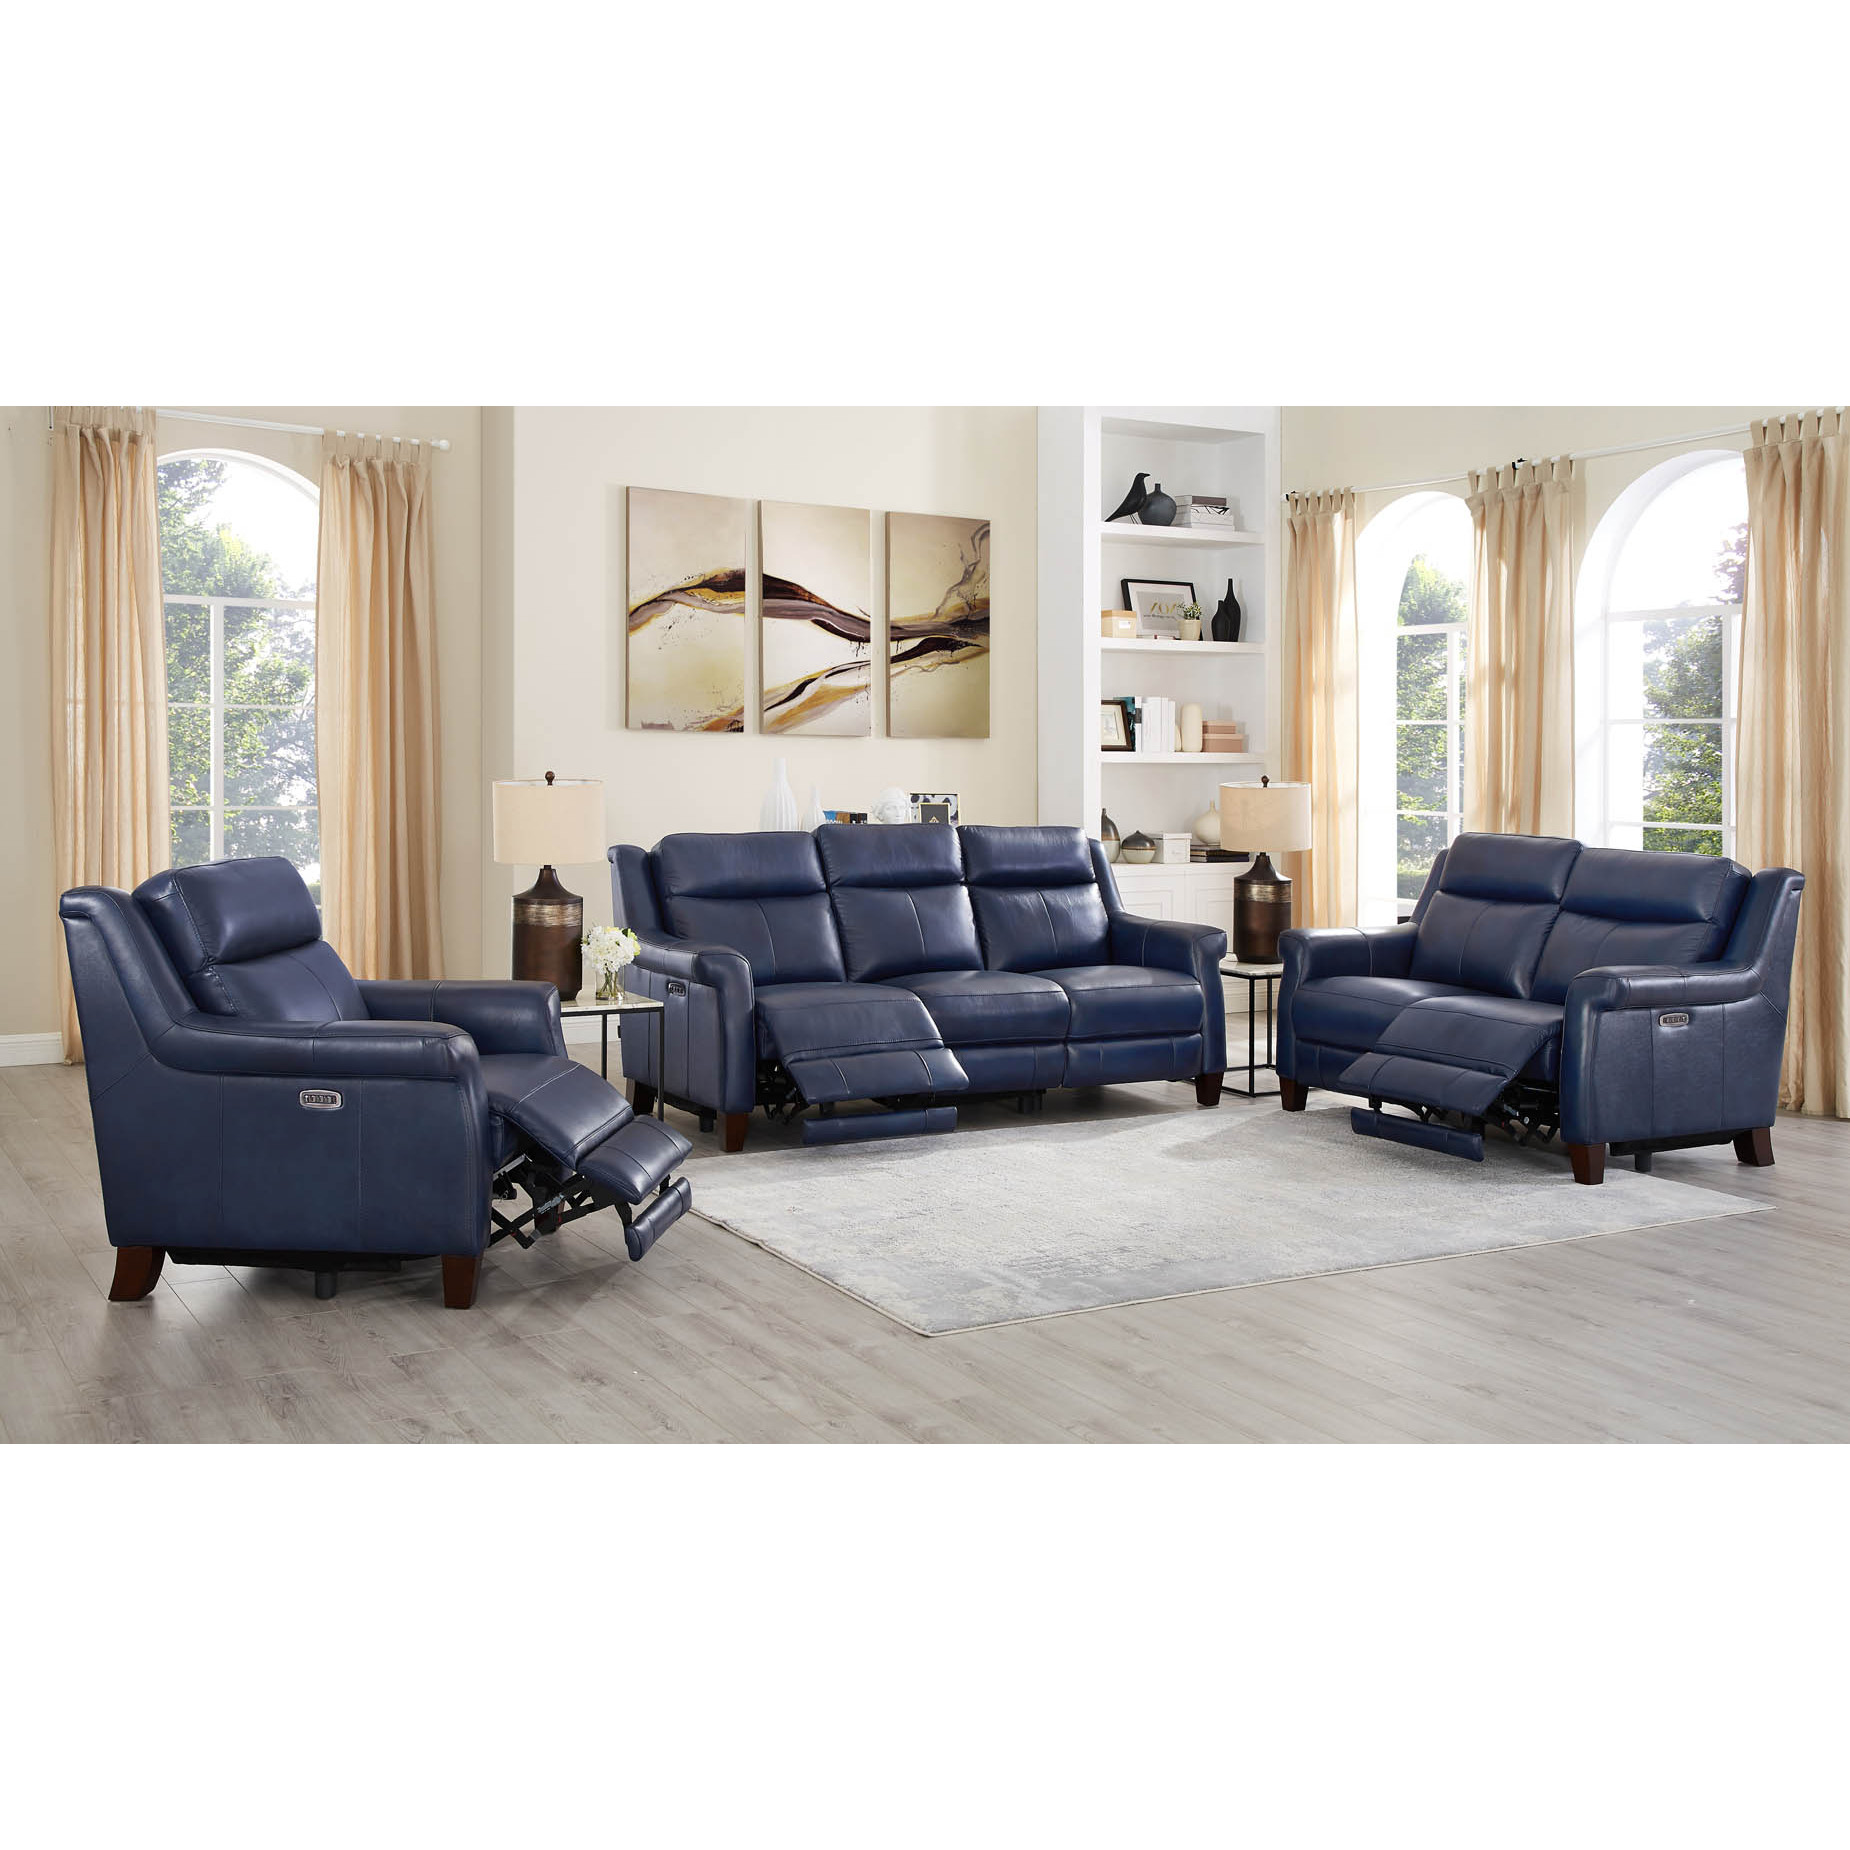 Tremendous Navona Leather 3 Piece Set Power Reclining Sofa Loveseat Armchair In Blue By Hydeline Leather Pdpeps Interior Chair Design Pdpepsorg